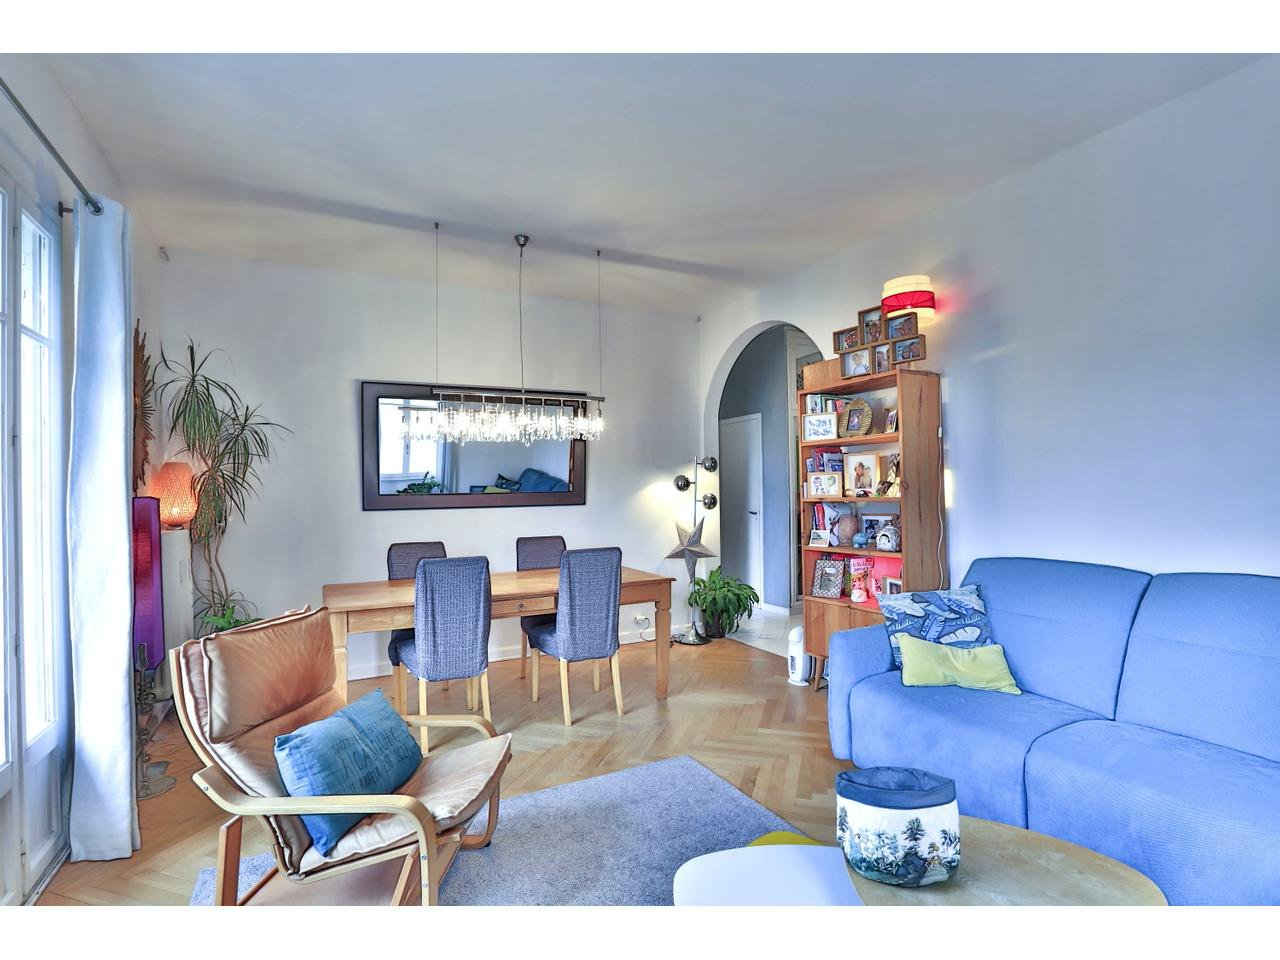 Apartment in Mont Boron/Le Port with balcony in south west